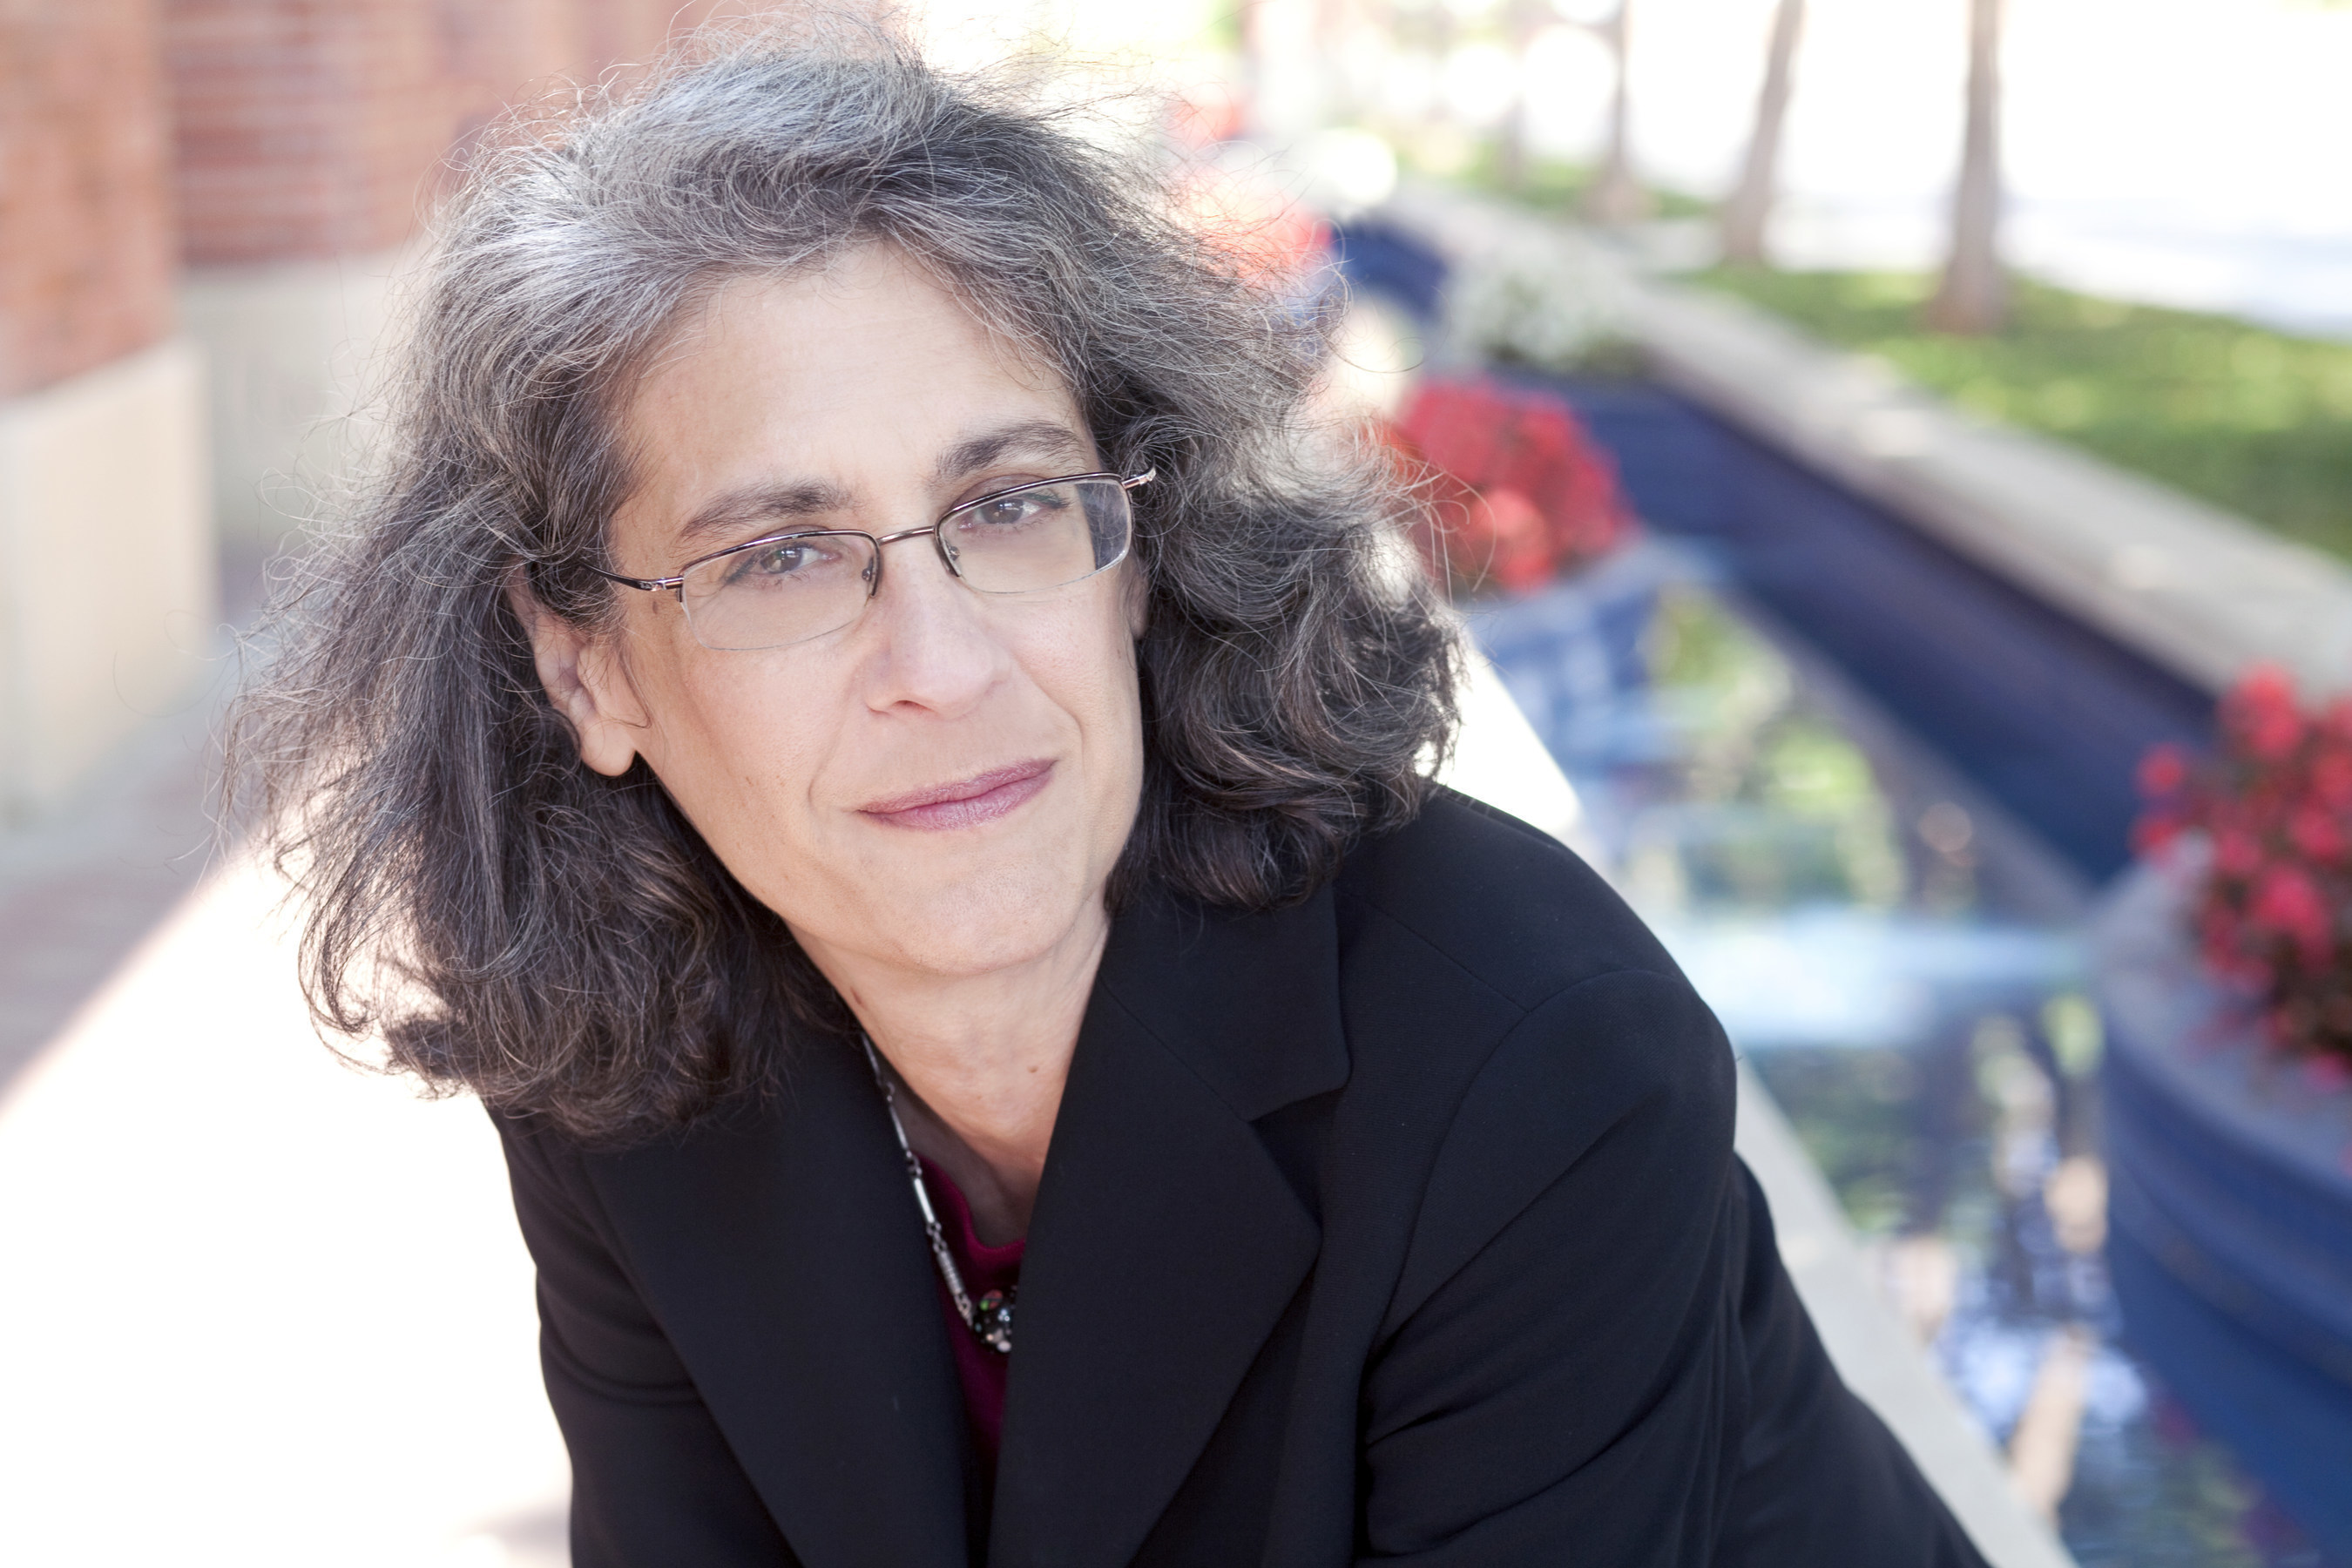 """Elyn Saks, USC law professor and MacArthur """"Genius Award"""" recipient, has battled schizophrenia for decades. She directs The Saks Institute for Mental Health Law, Policy and Ethics at USC Gould School of Law in Los Angeles."""